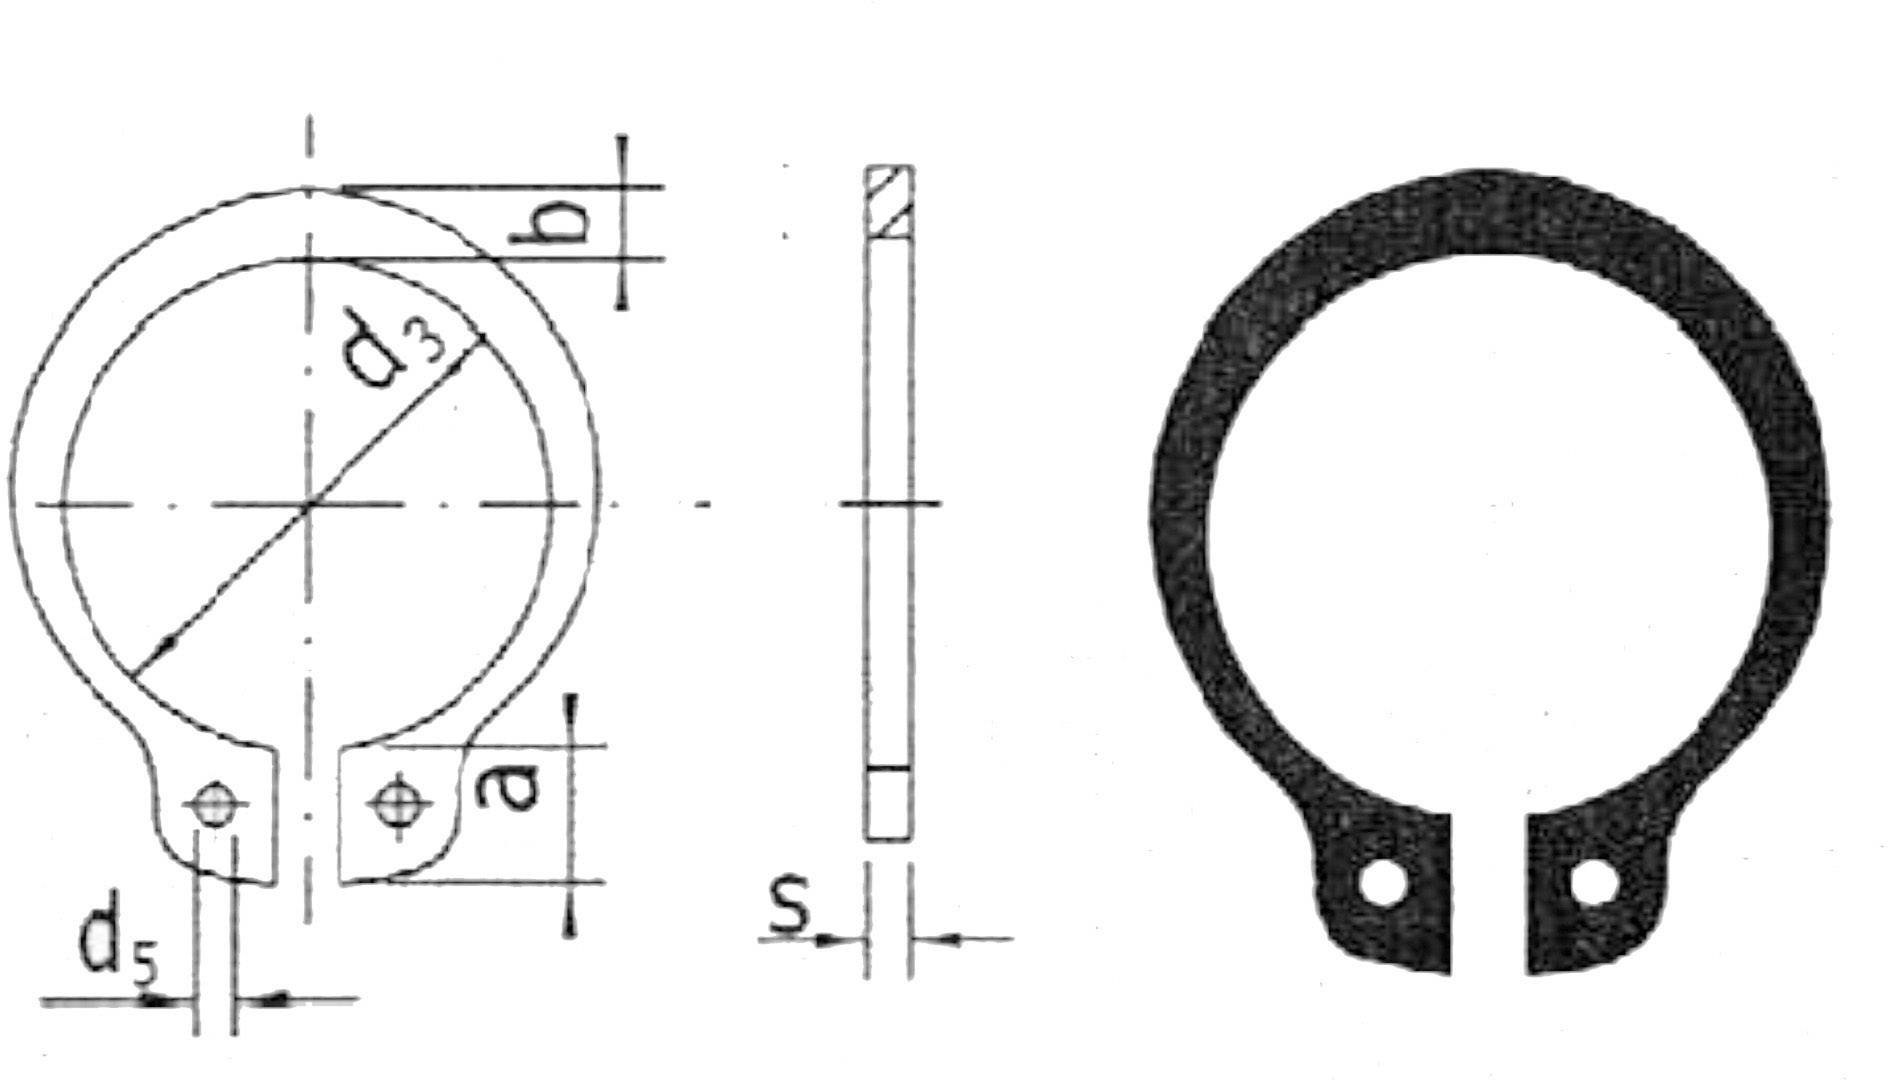 Shaft Retaining Ring Reely Suitable For Shaft Diameter 10 Mm 20 Pc S